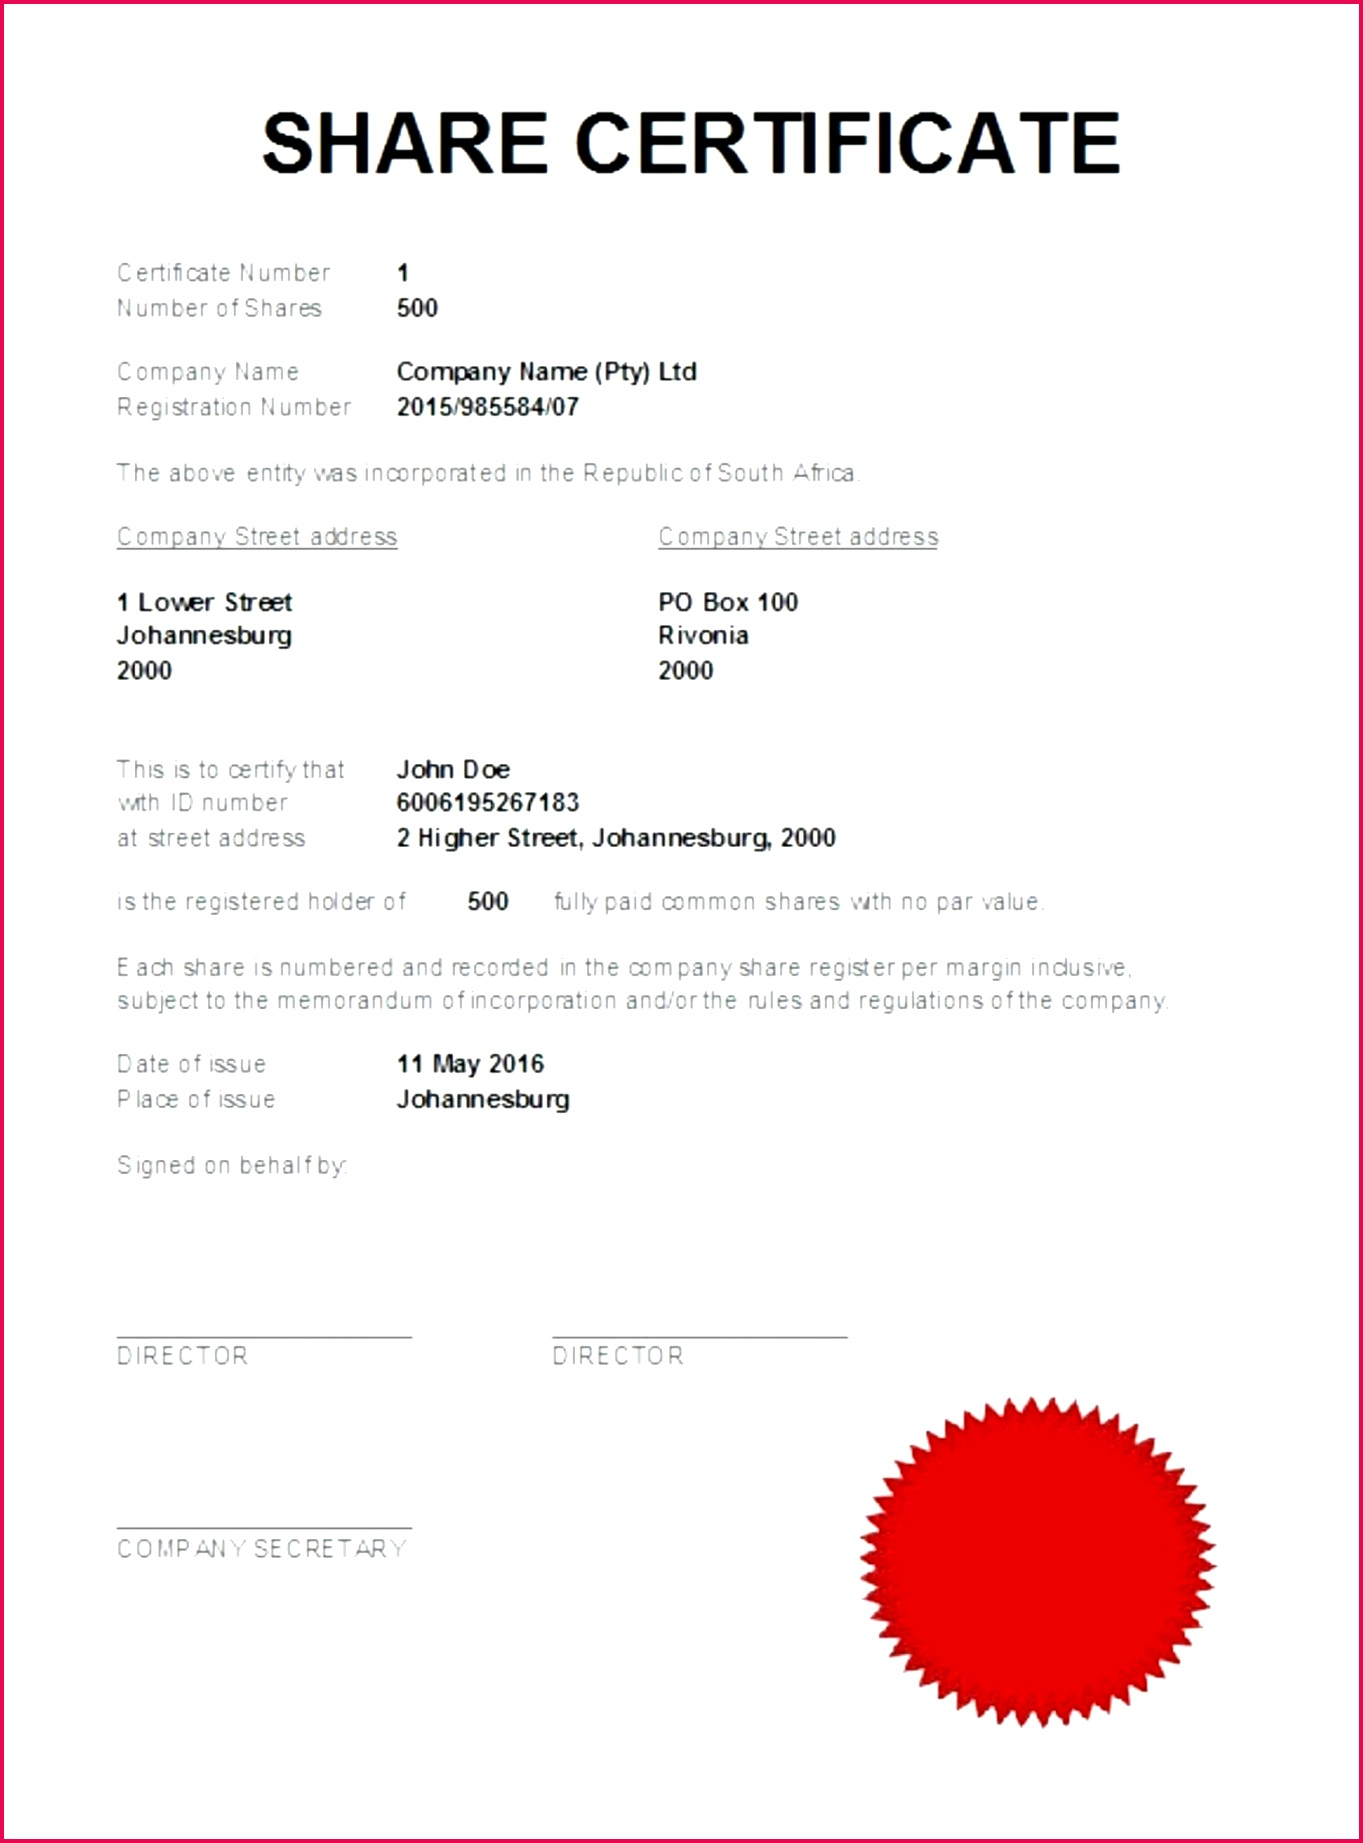 shareholder certificate sample or free certificate template bc brochure templates free of shareholder certificate sample